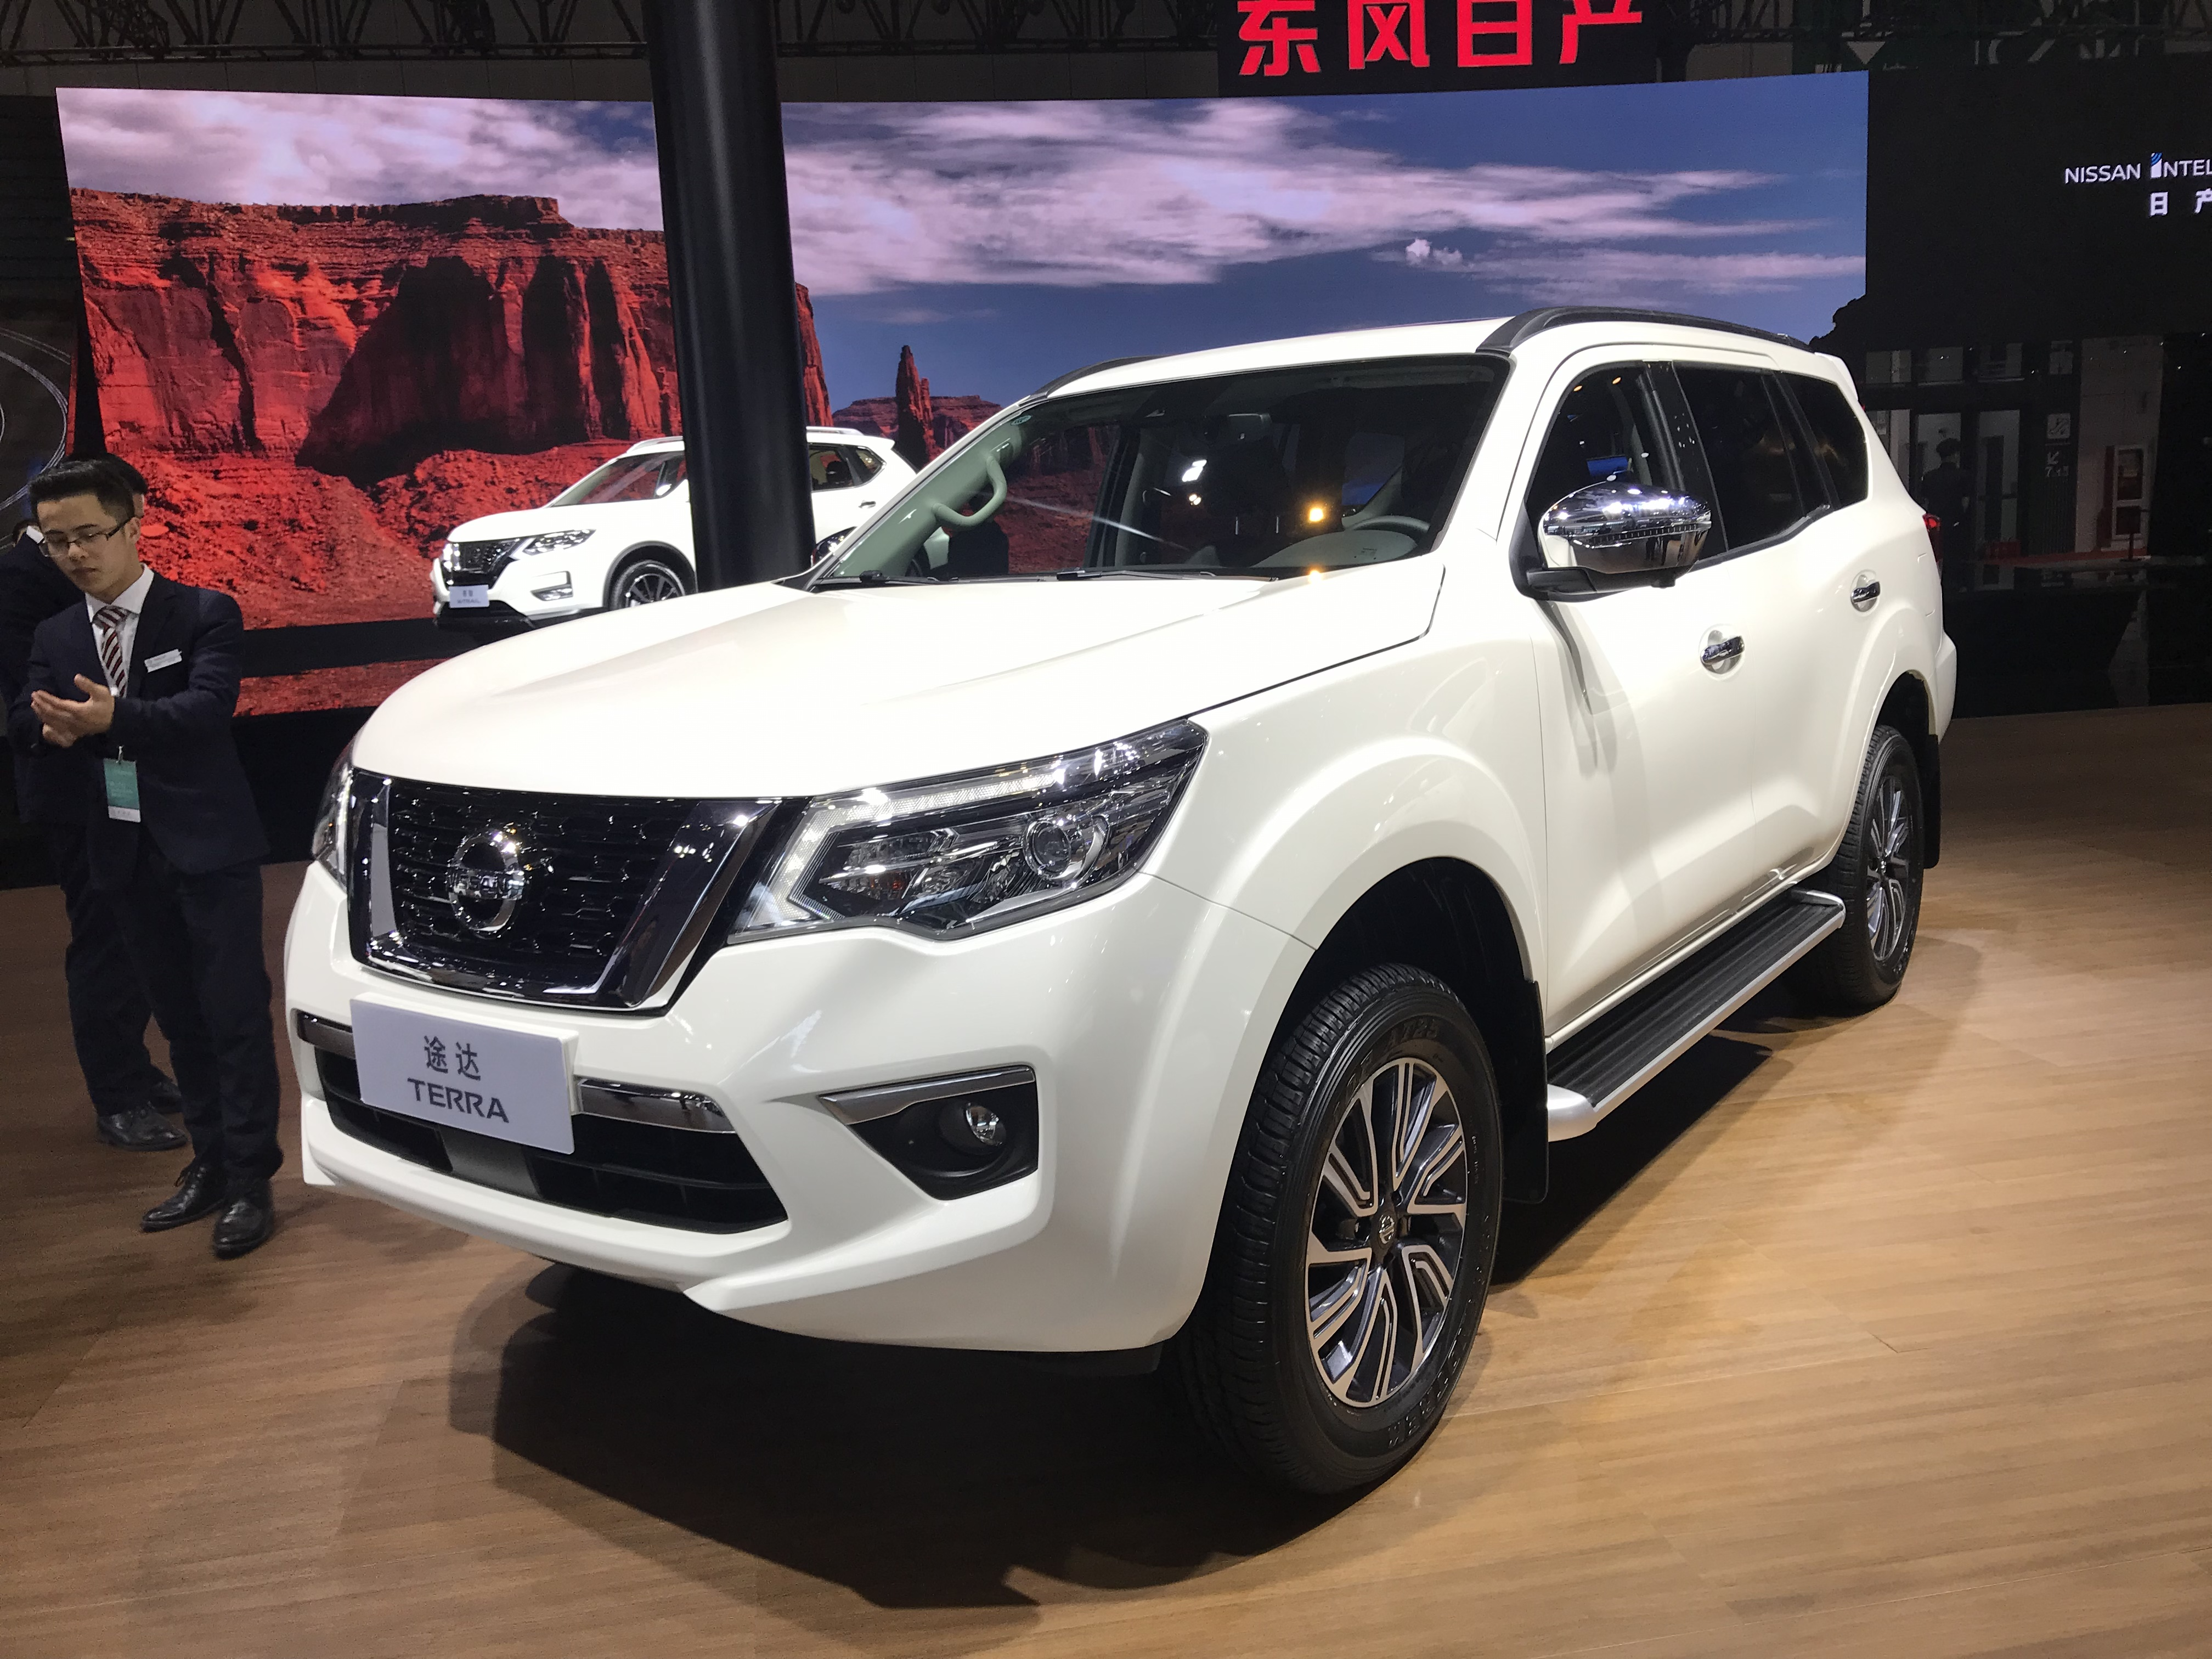 2020 Mitsubishi Montero Limited Price, Specs, Redesign, And Engines >> Nissan Terra Wikipedia